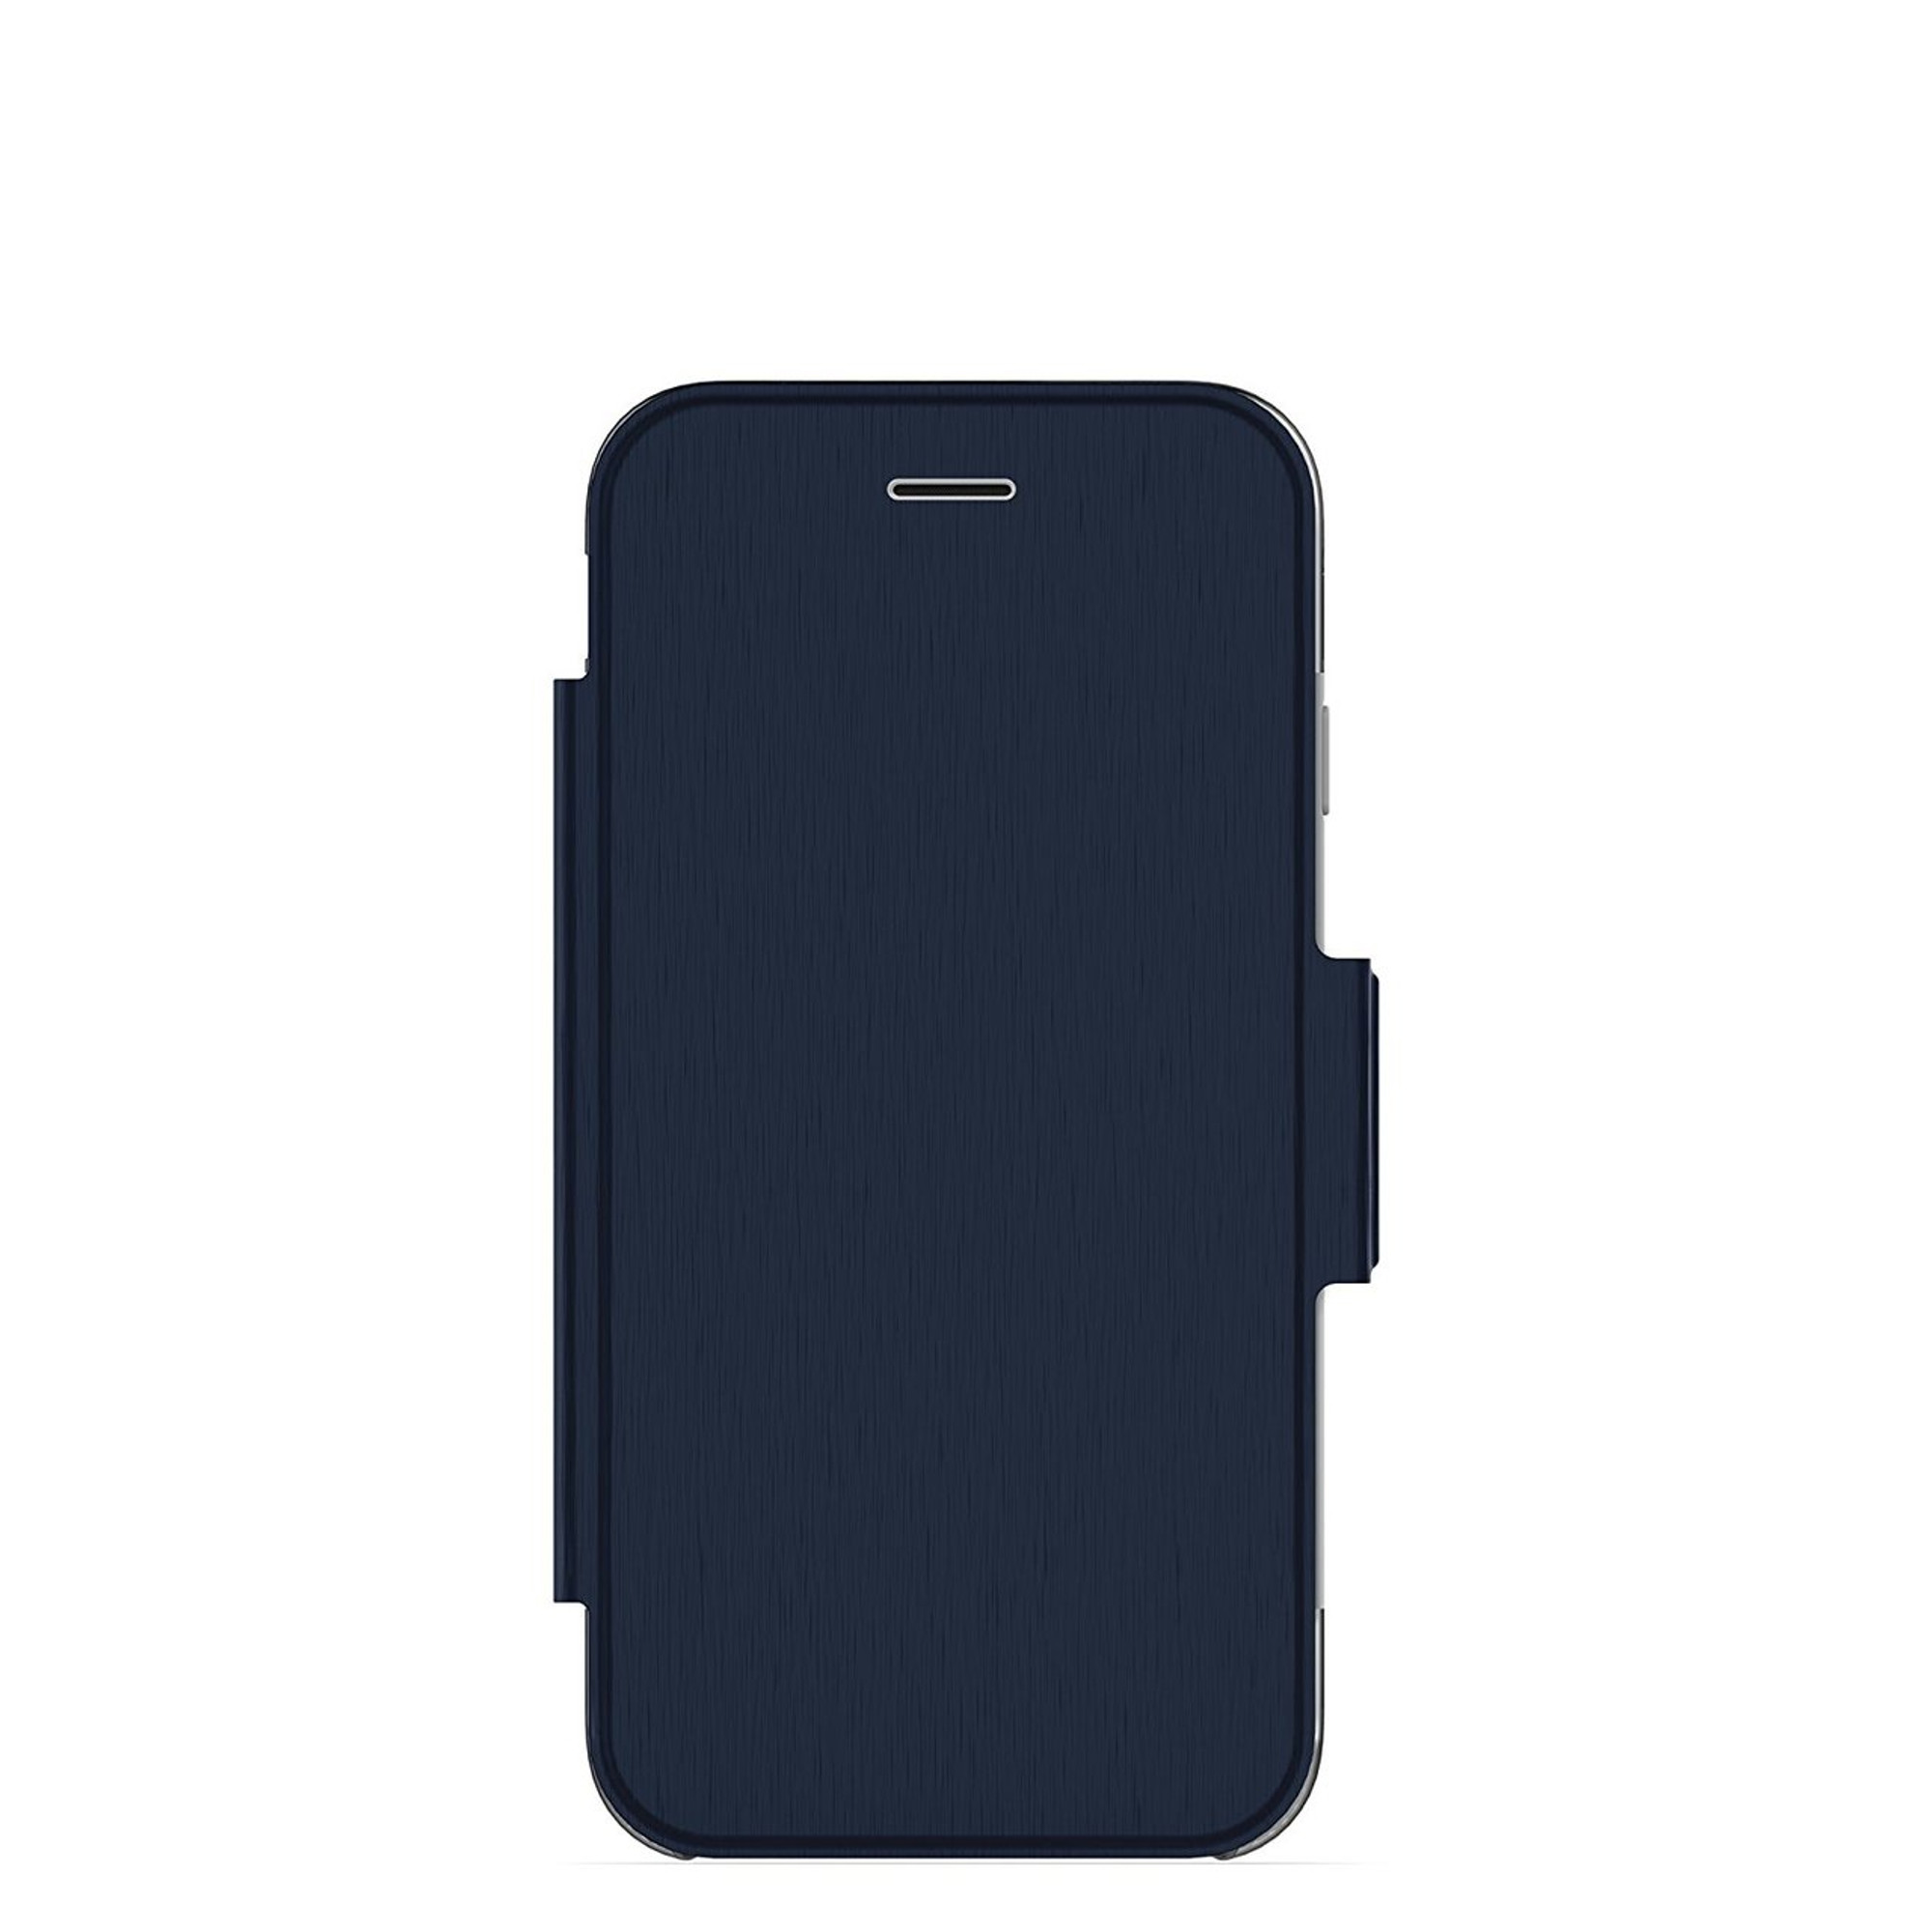 reputable site 786c7 954e2 mophie Hold Force Folio for use with Base Case for iPhone 7 - Navy